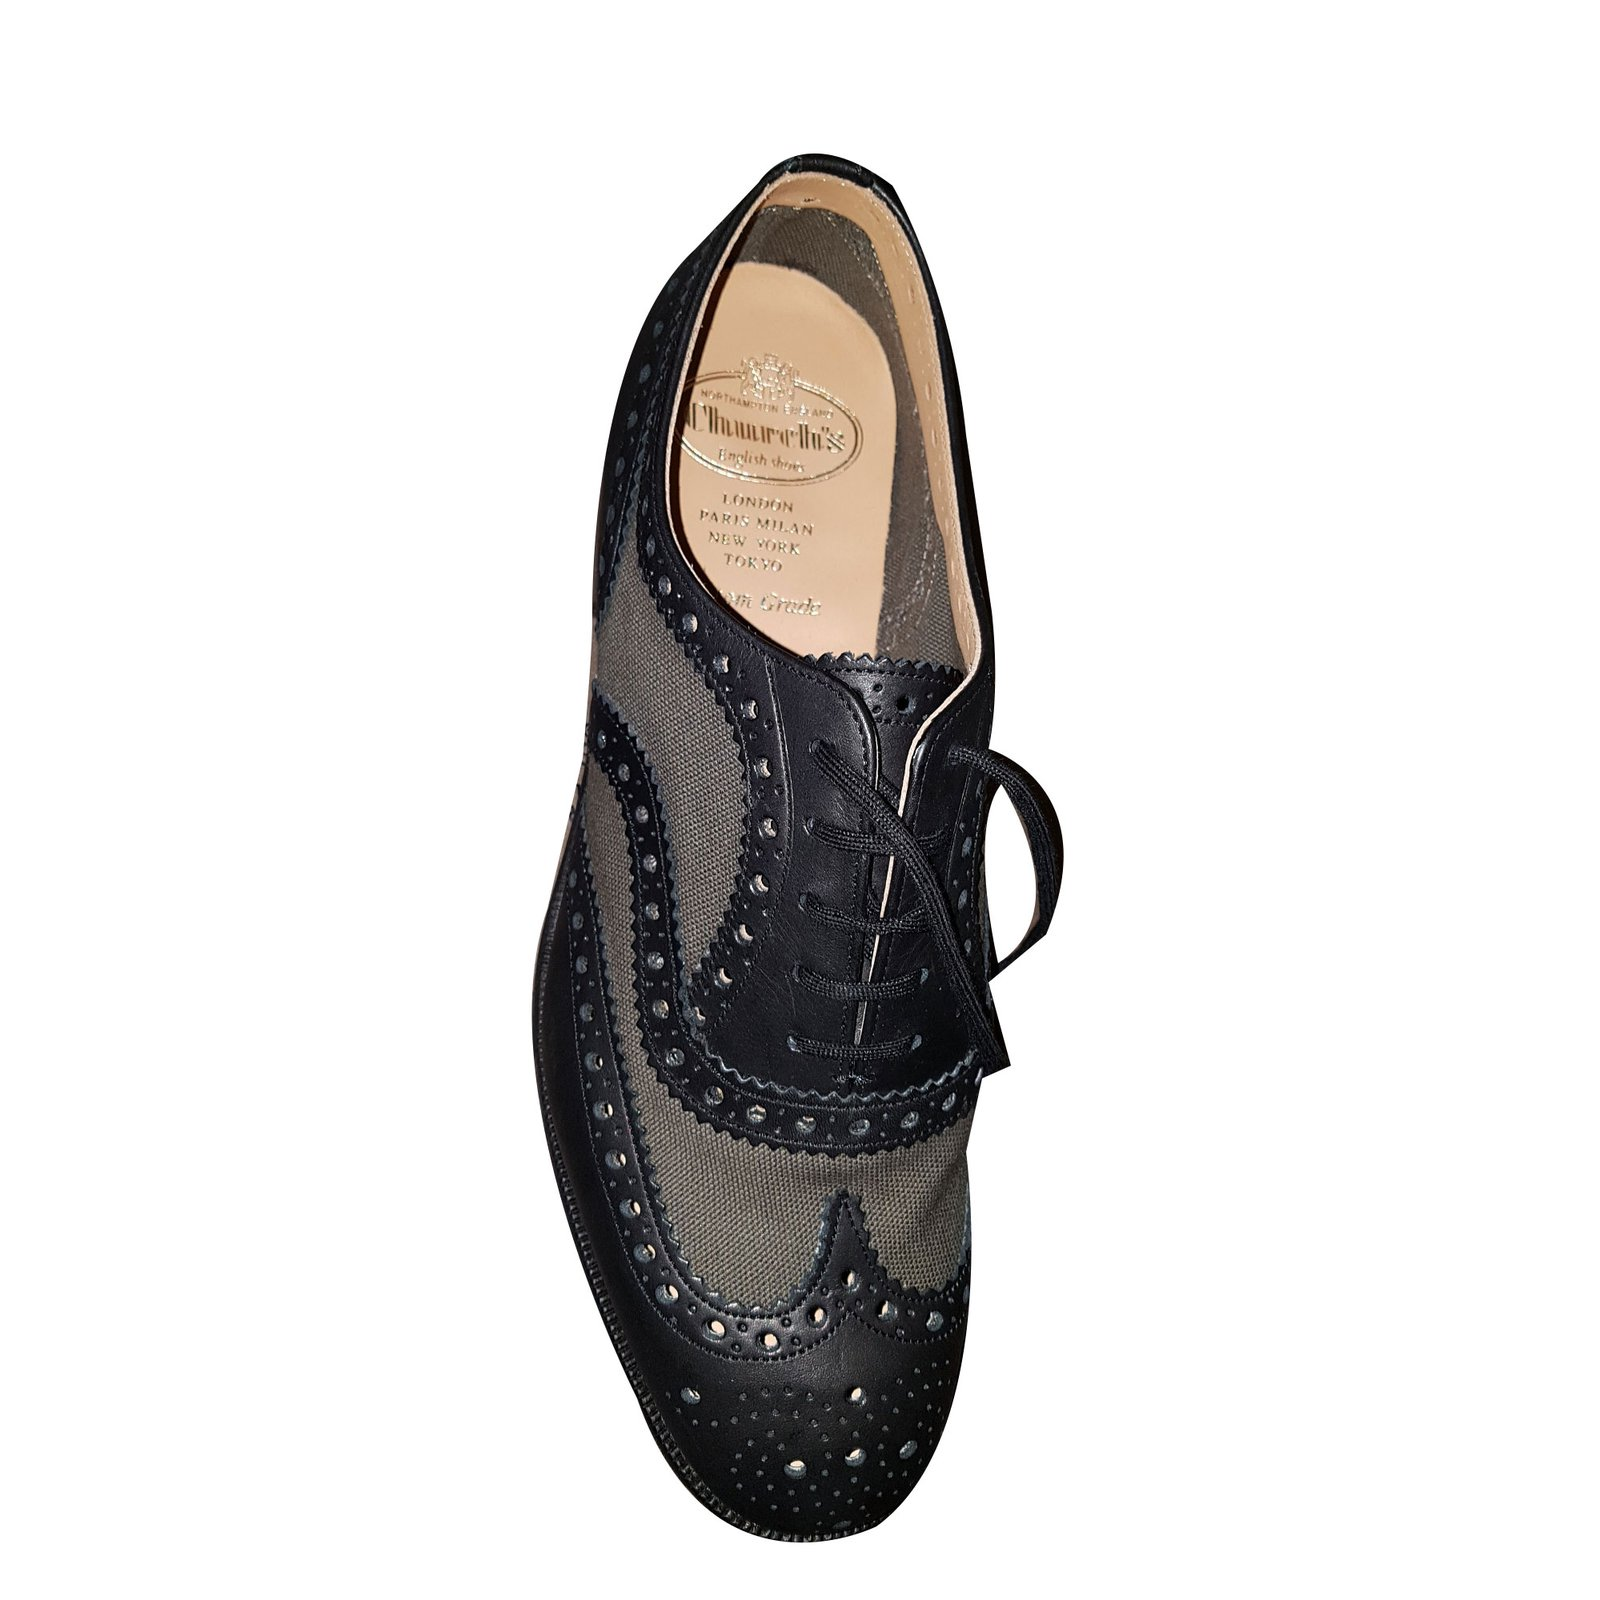 separation shoes 56c02 0f54e shoes church's new